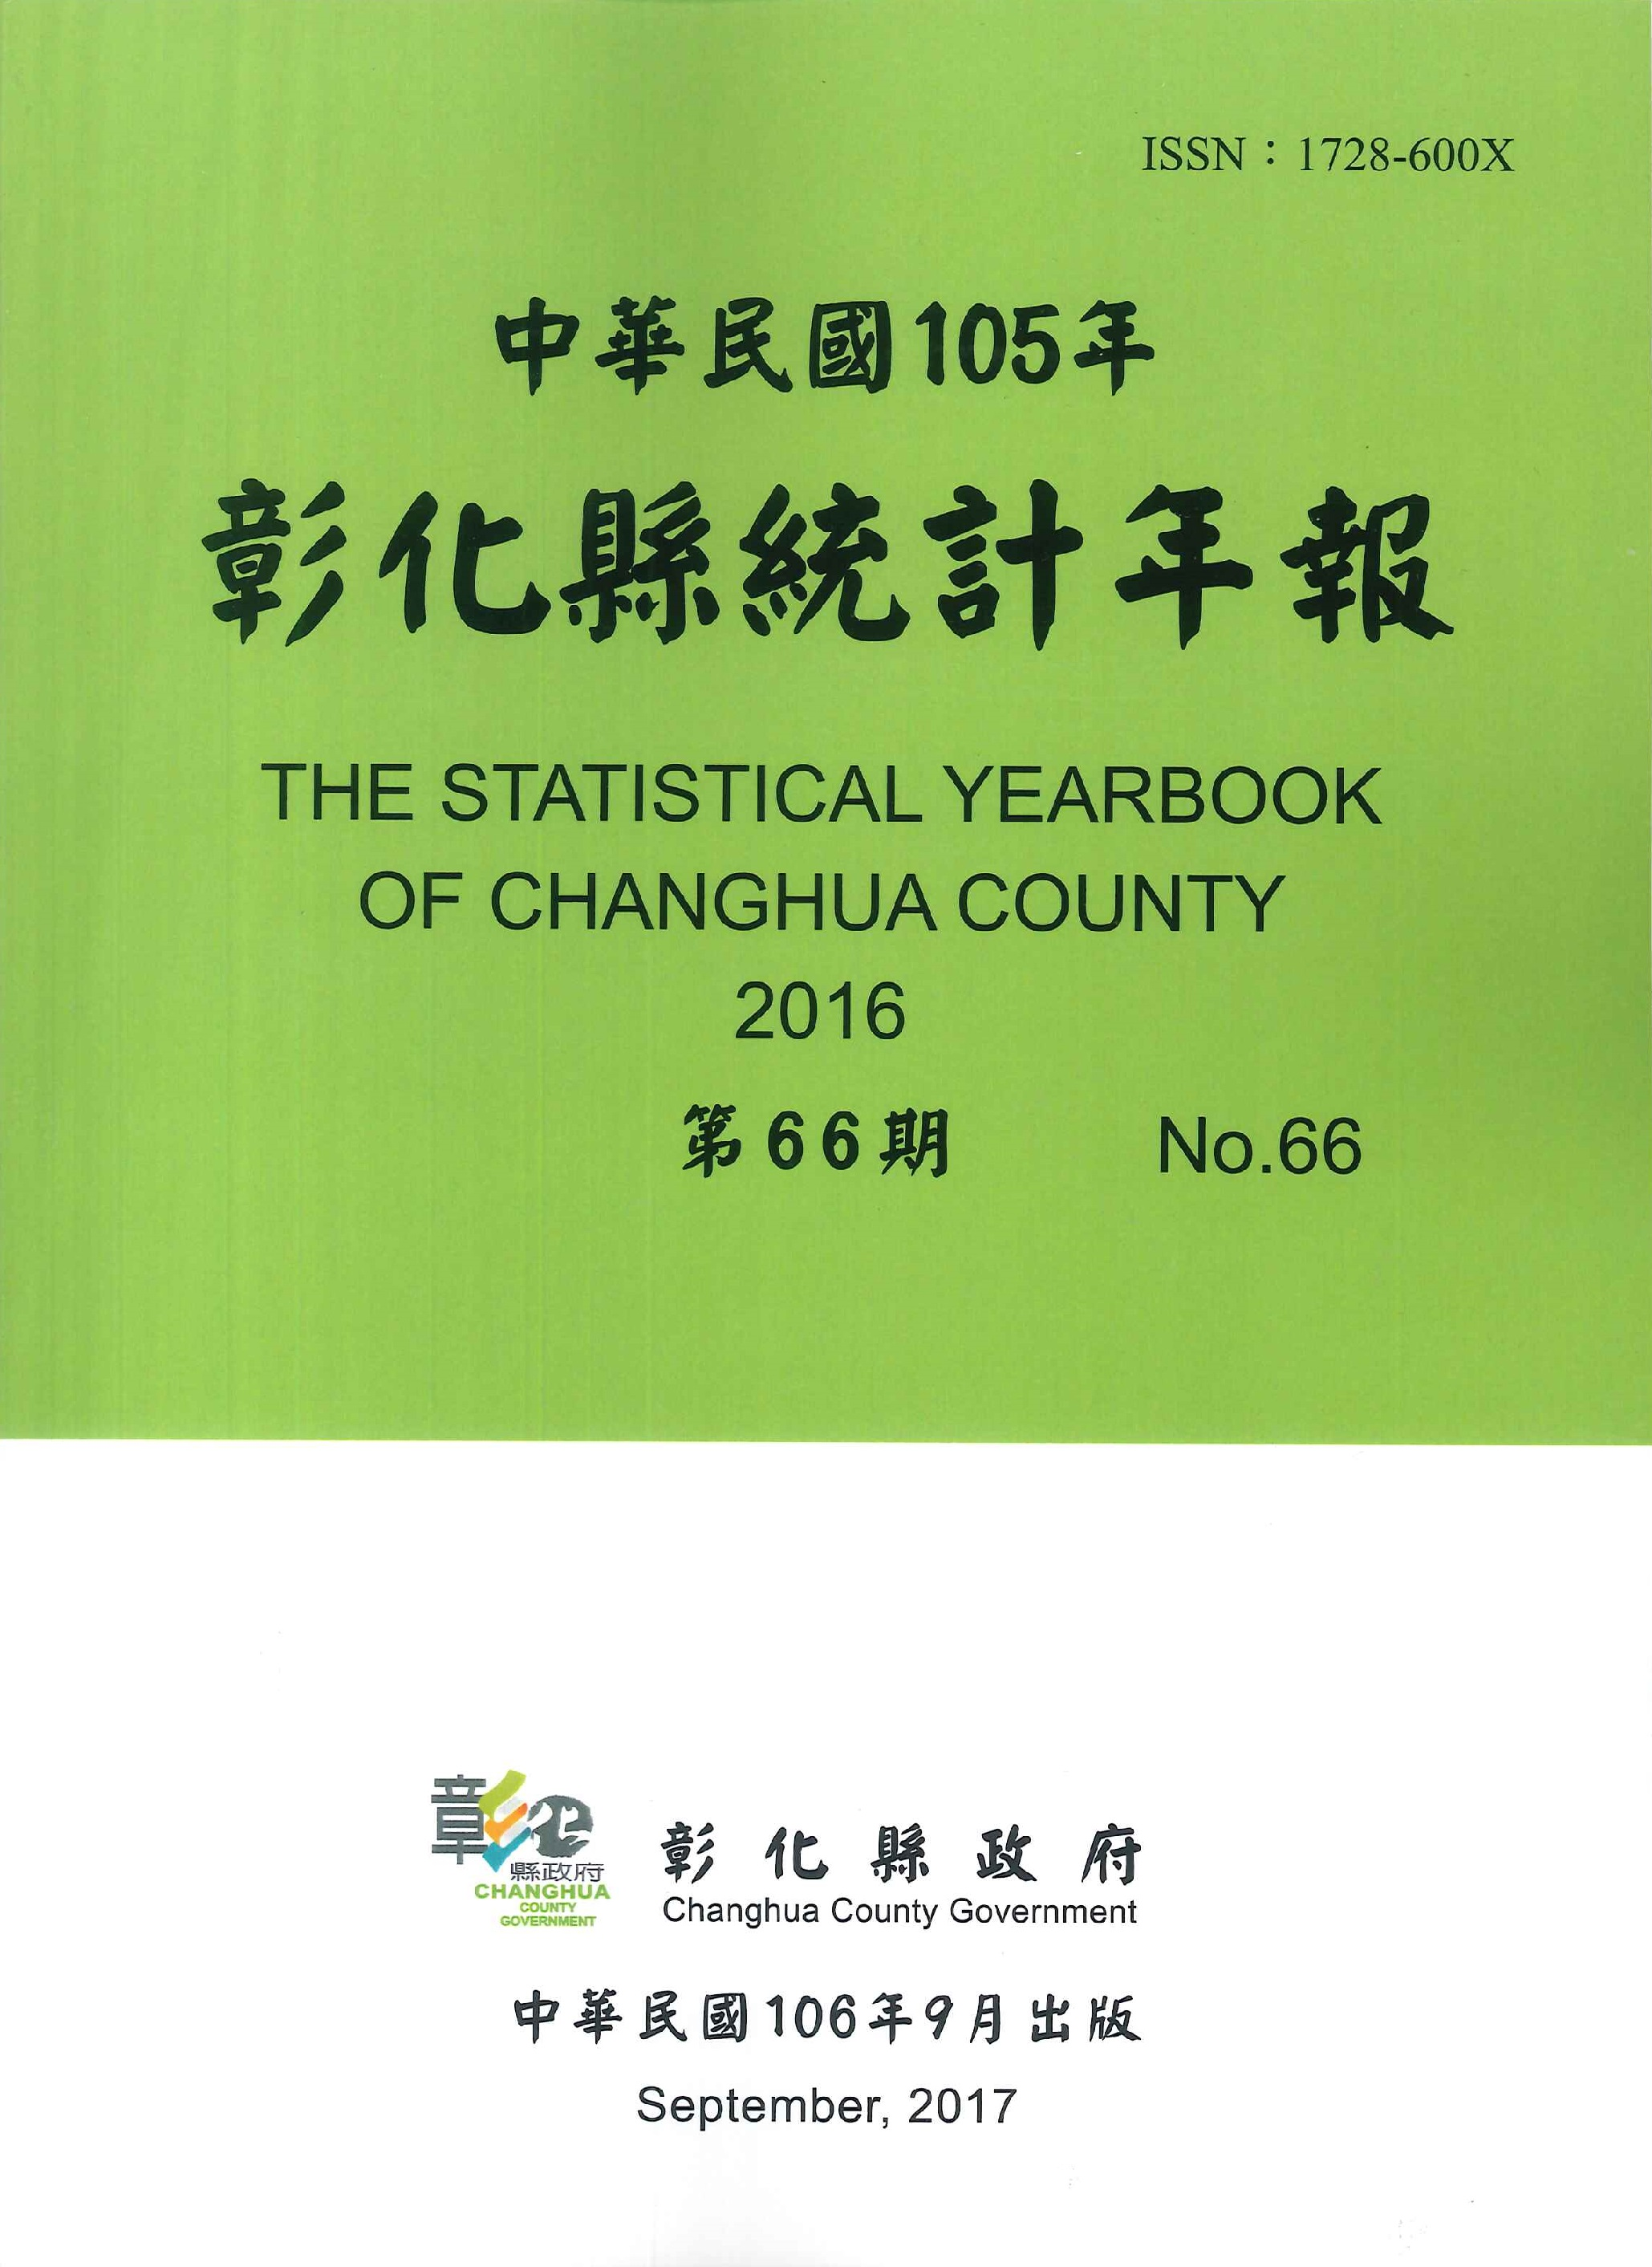 彰化縣統計年報.2016=The statistical yearbook of Changhua County